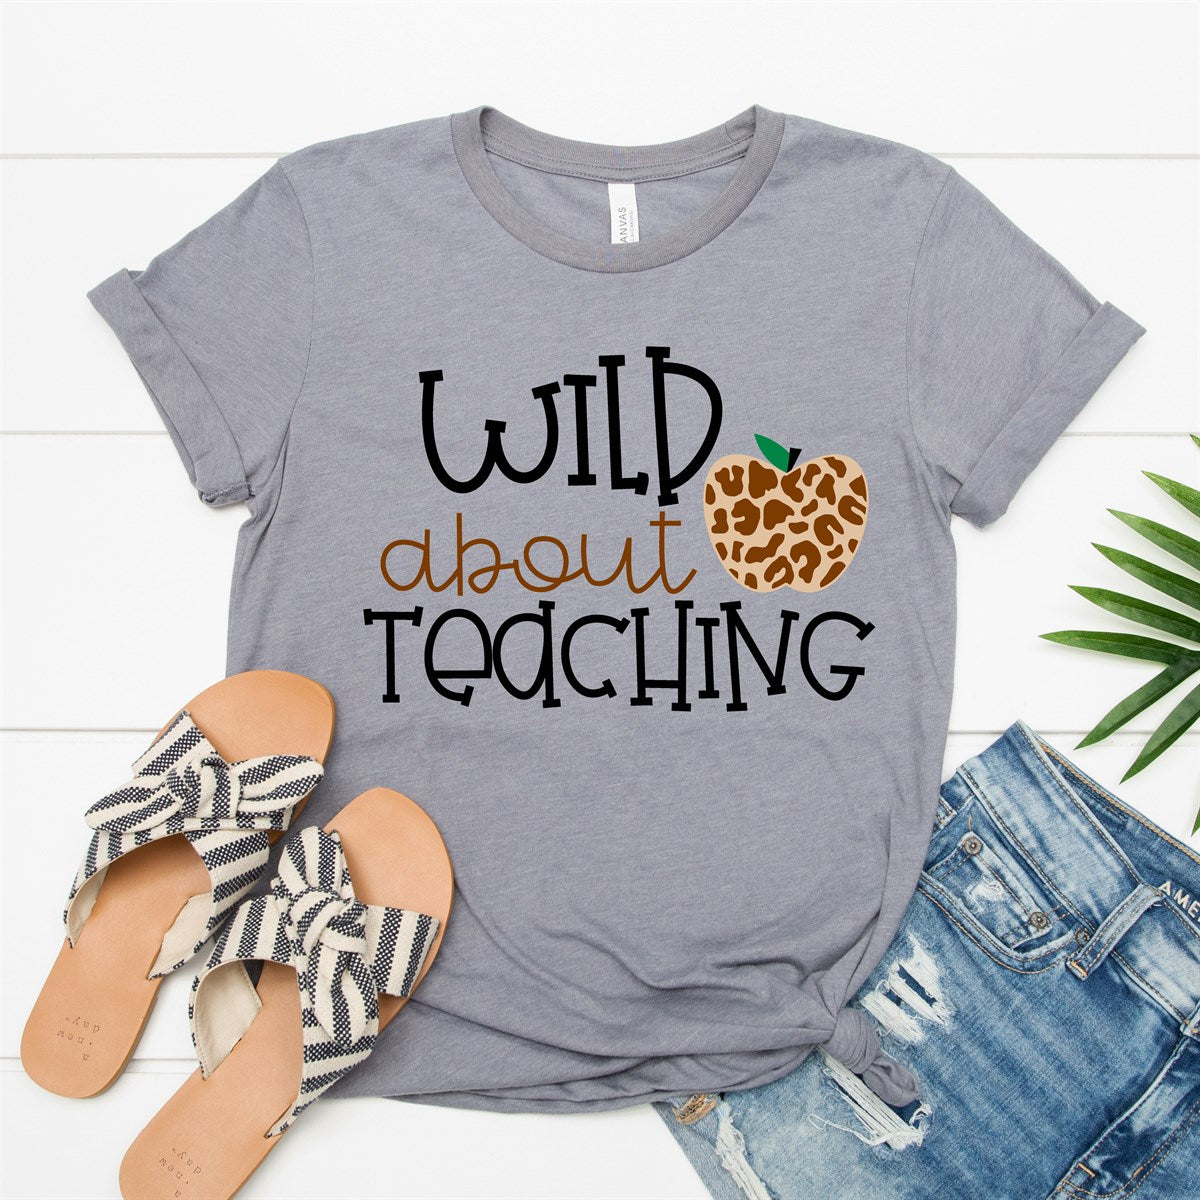 Daily Deal - Wild About Teaching Tee